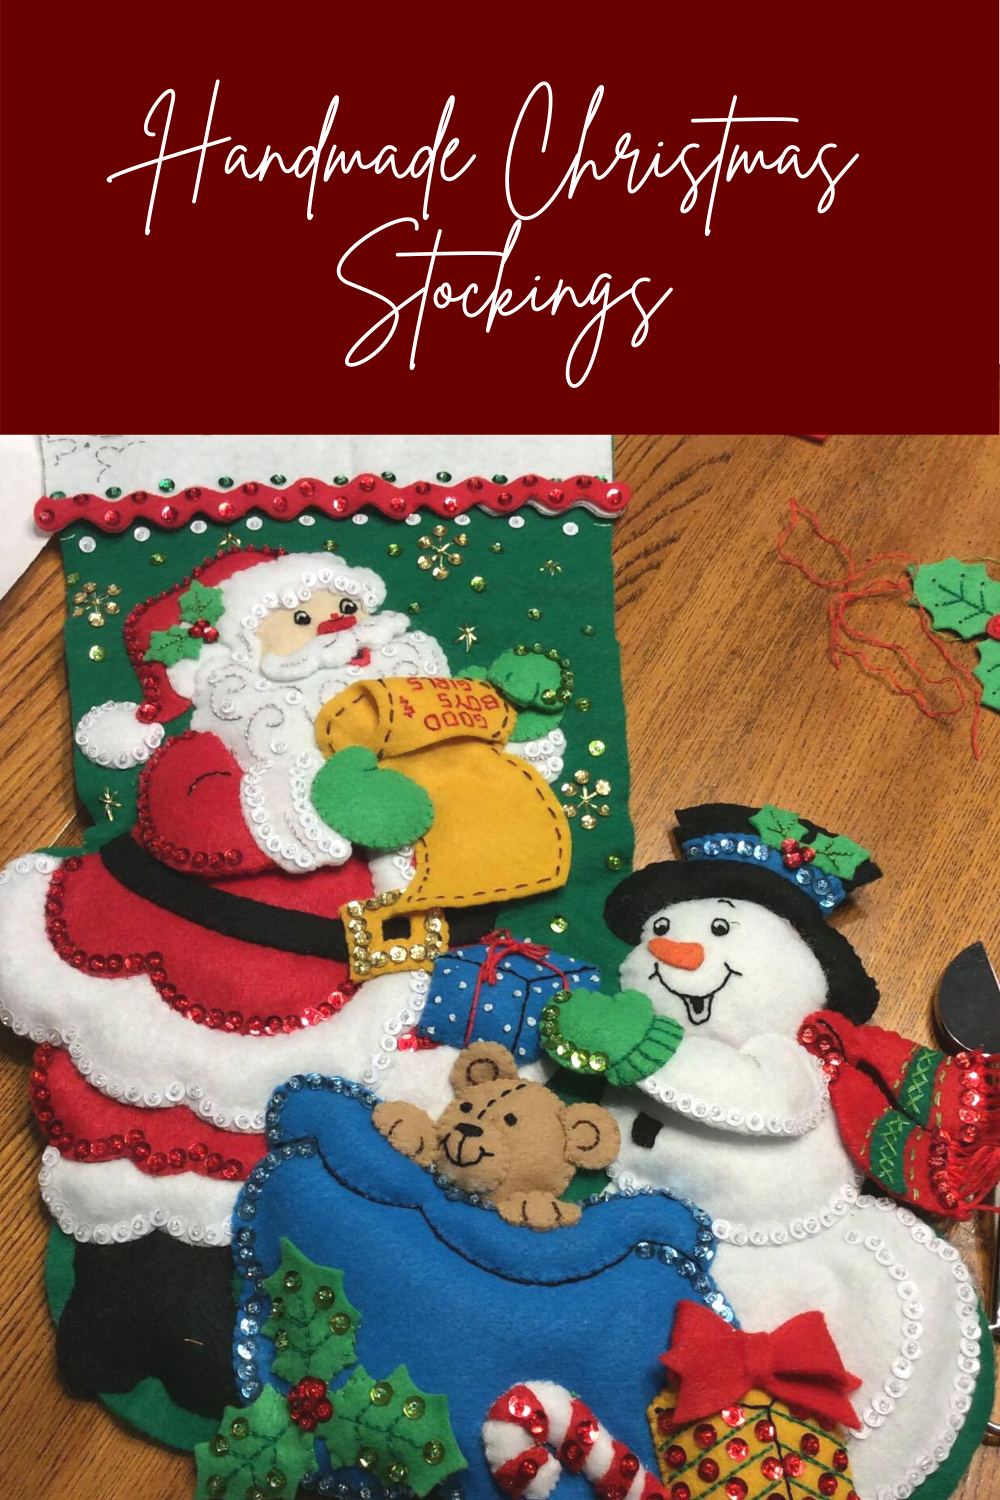 A handmade felt Christmas Stocking lays against a wooden table. The stocking has Santa and a snowman on it.